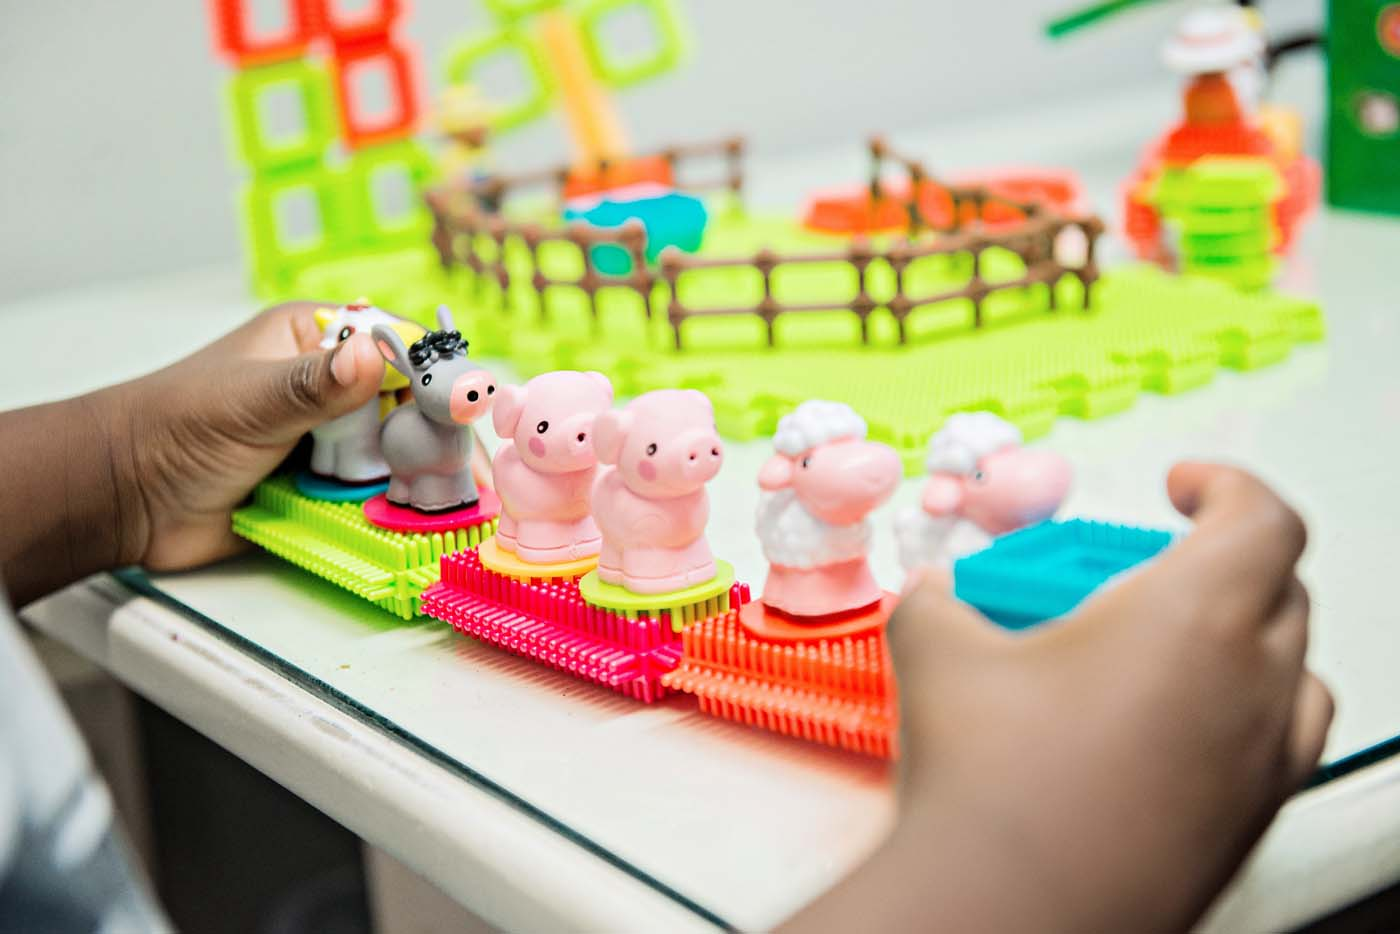 child's hands with farm animal toy